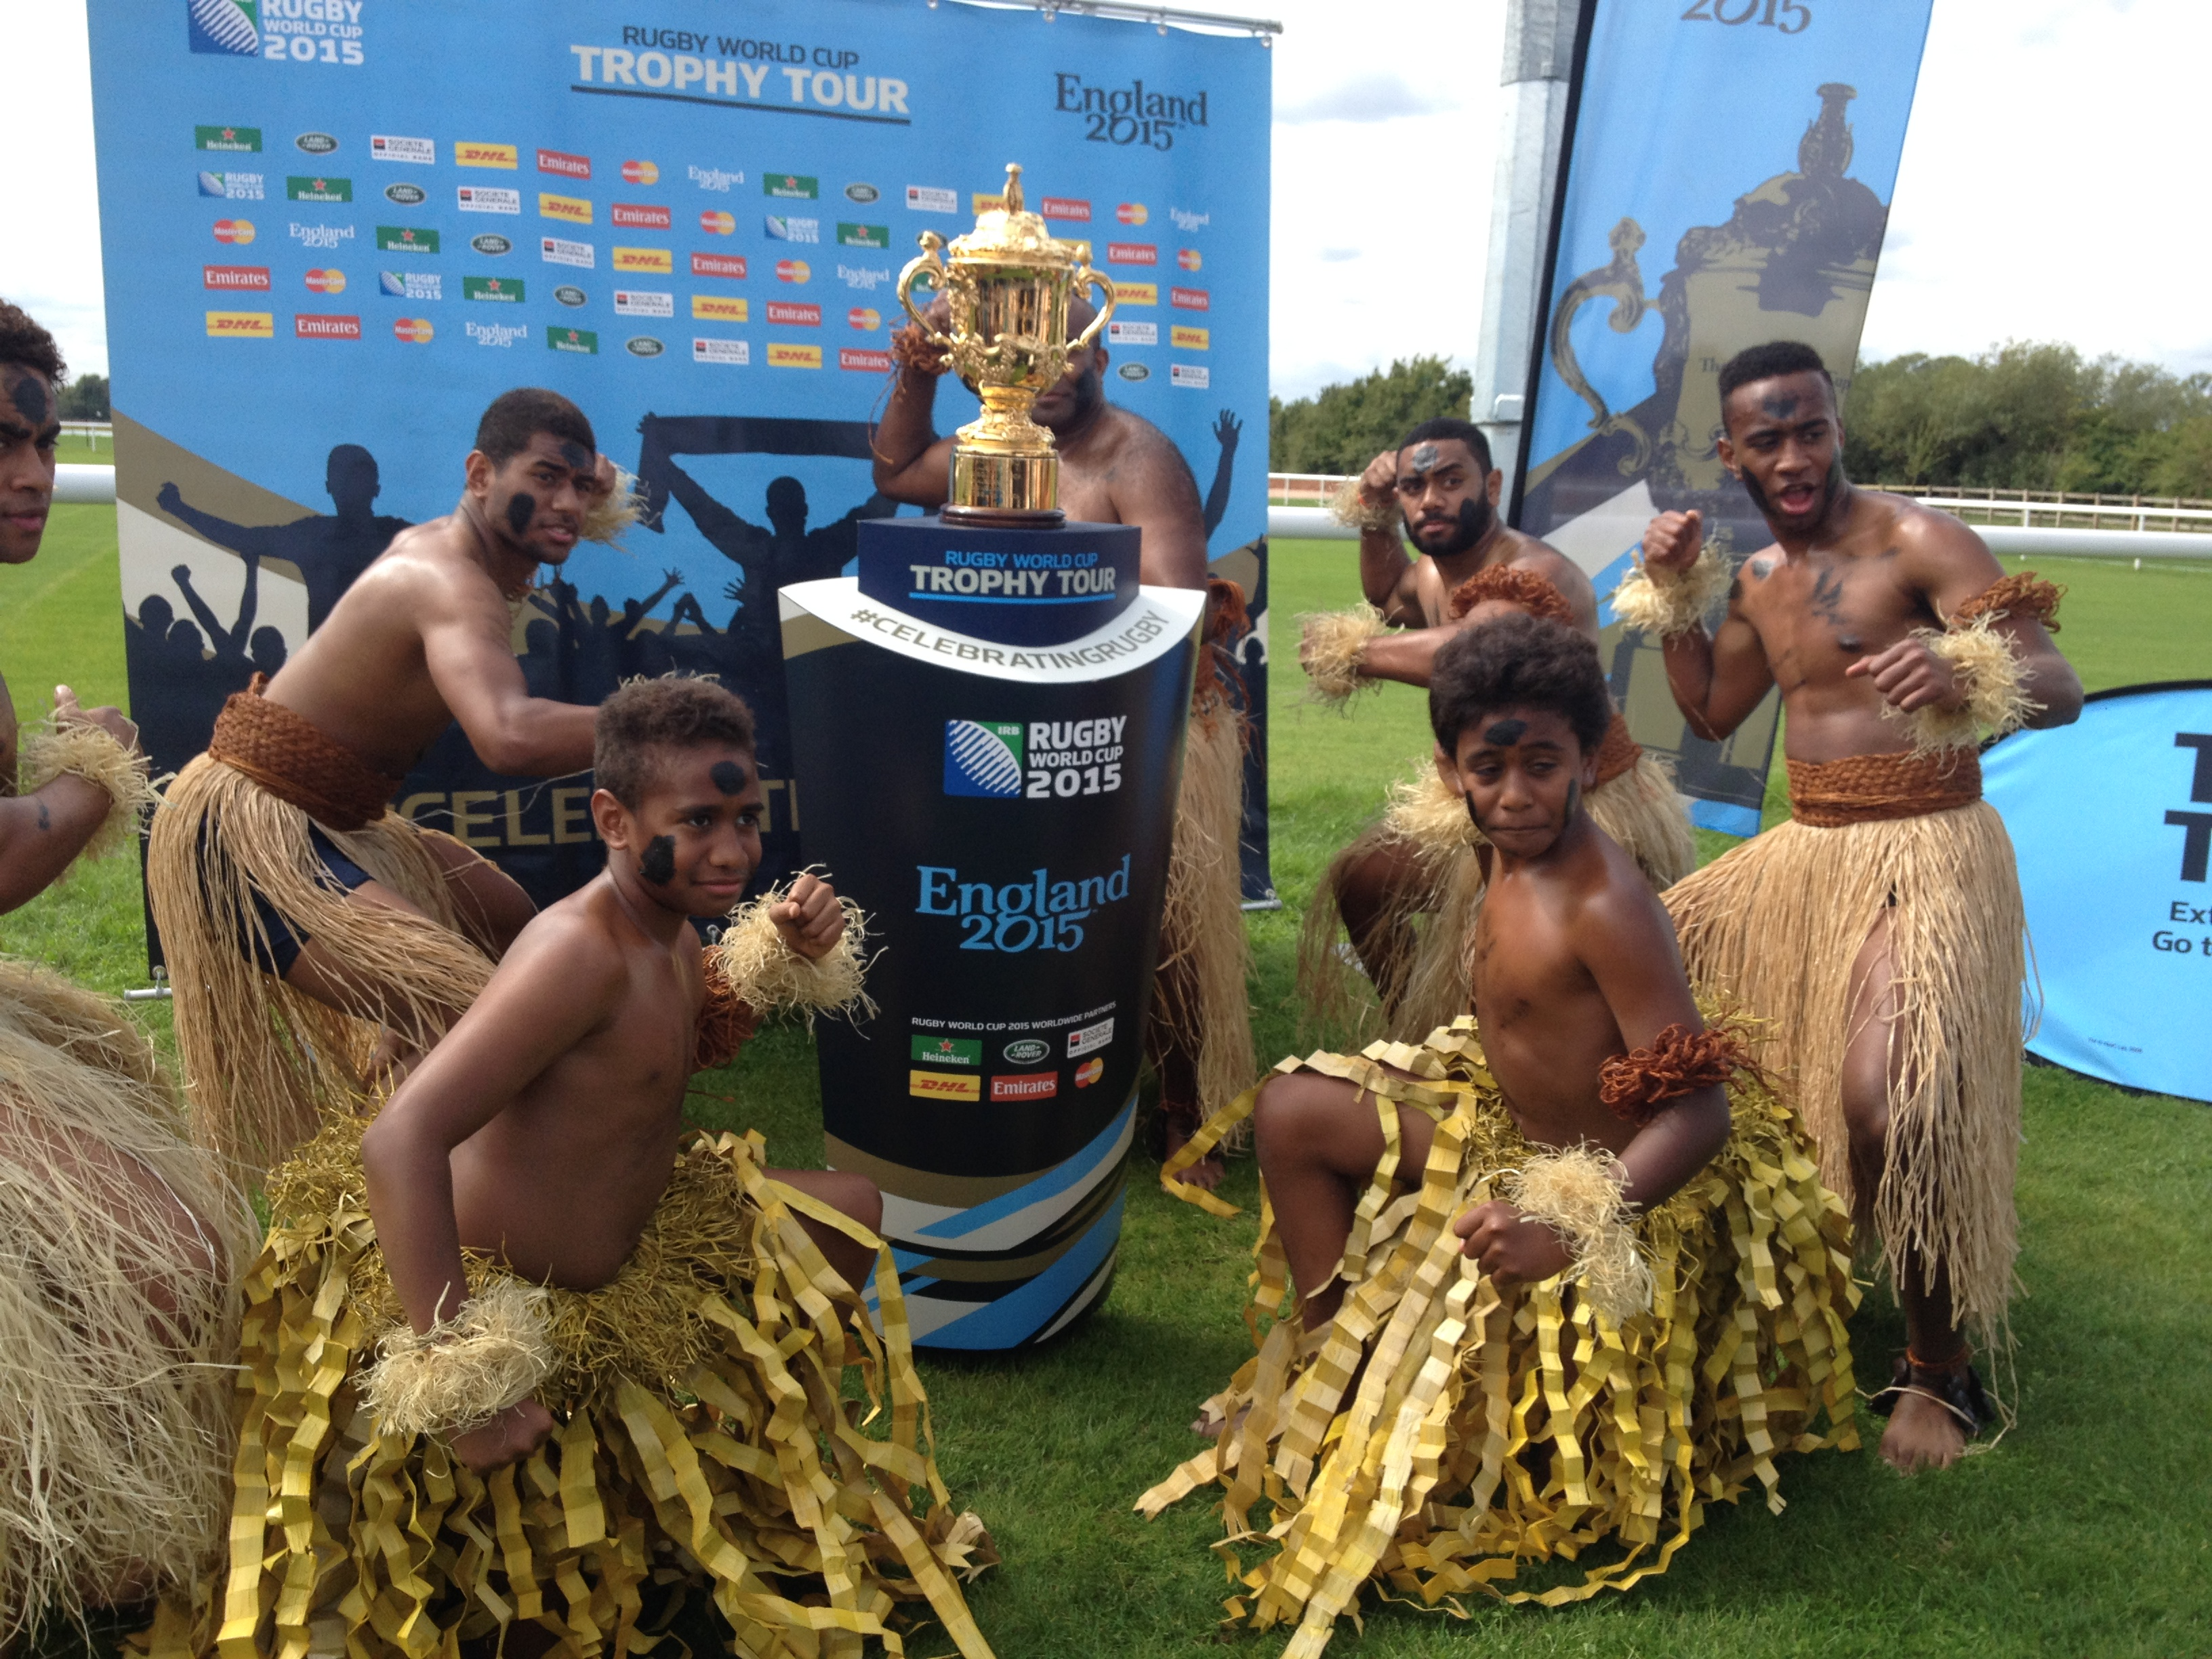 Fijian warriors surround the Rugby World Cup